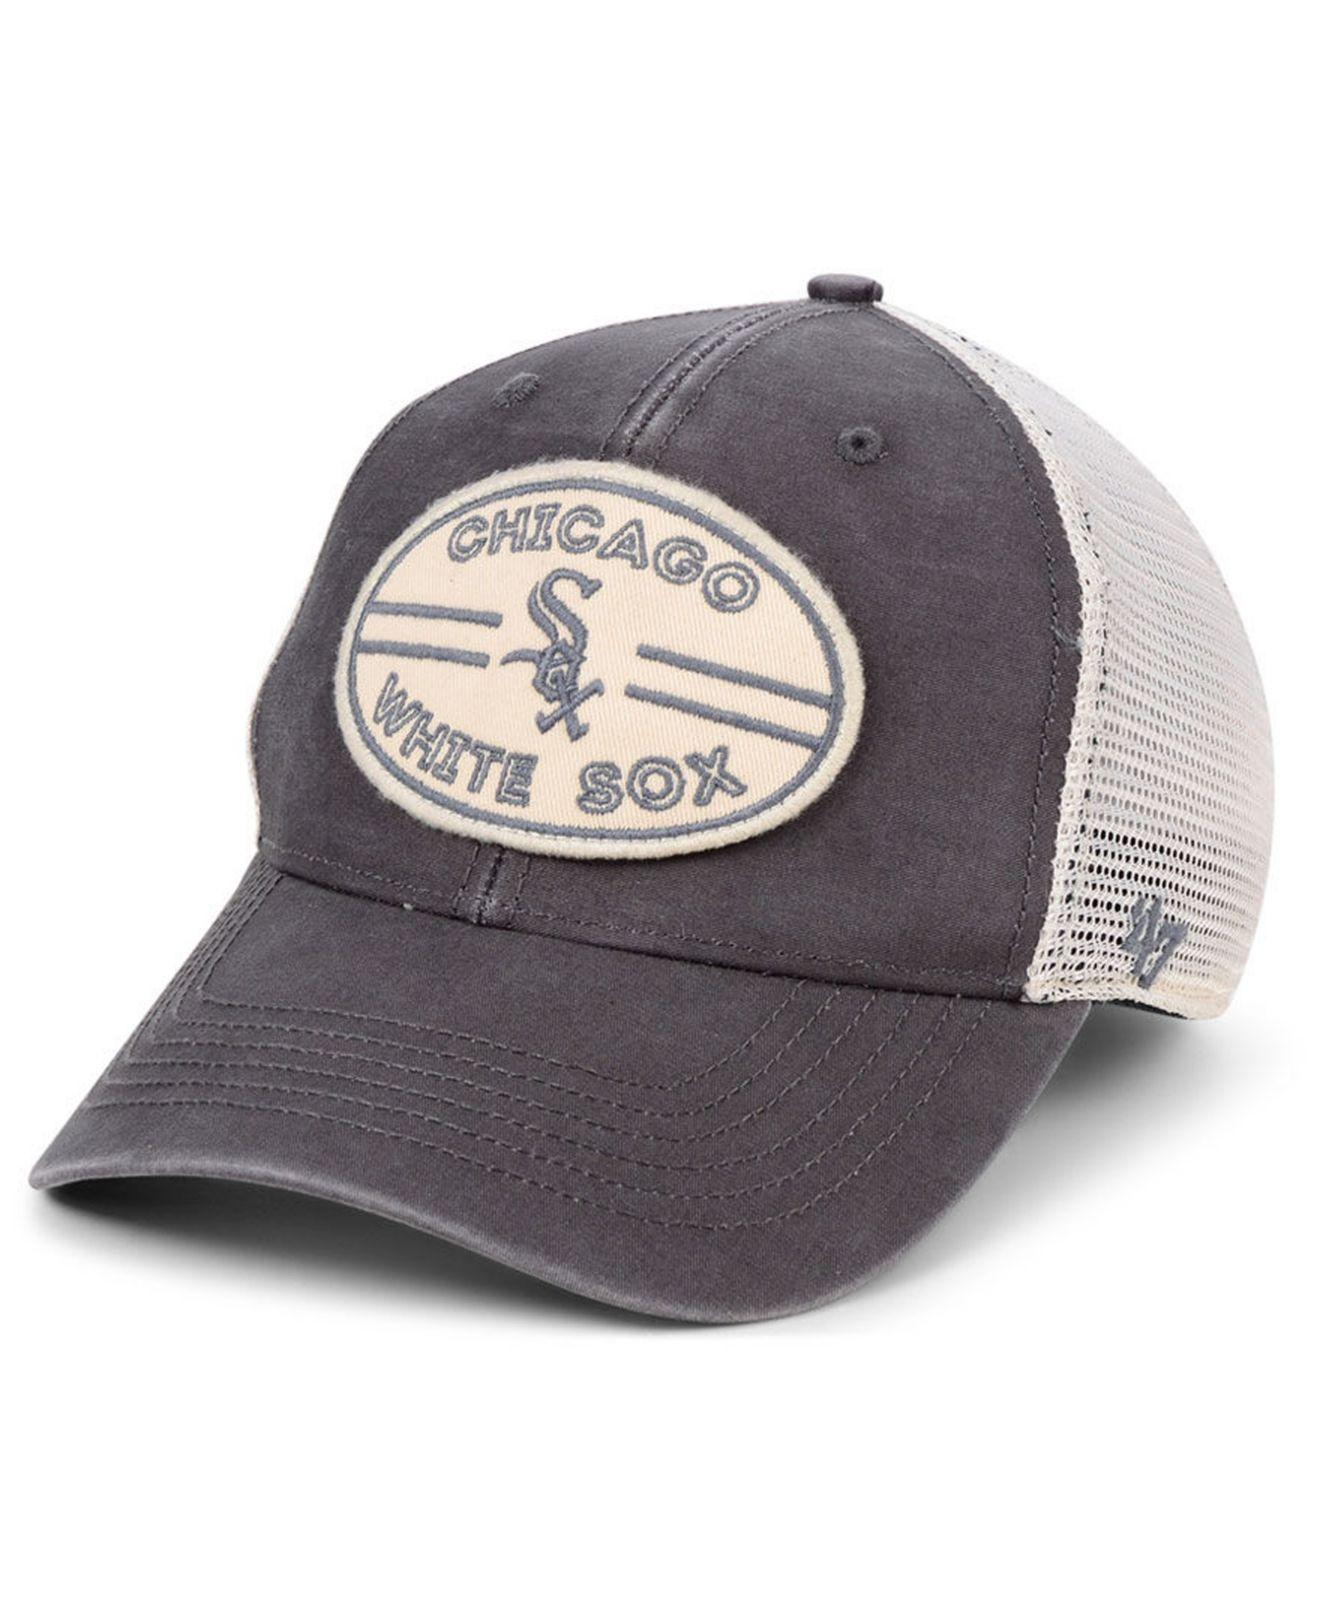 best authentic 12c22 53adc Lyst - 47 Brand Chicago White Sox Hudson Patch Trucker Mvp Cap in ...